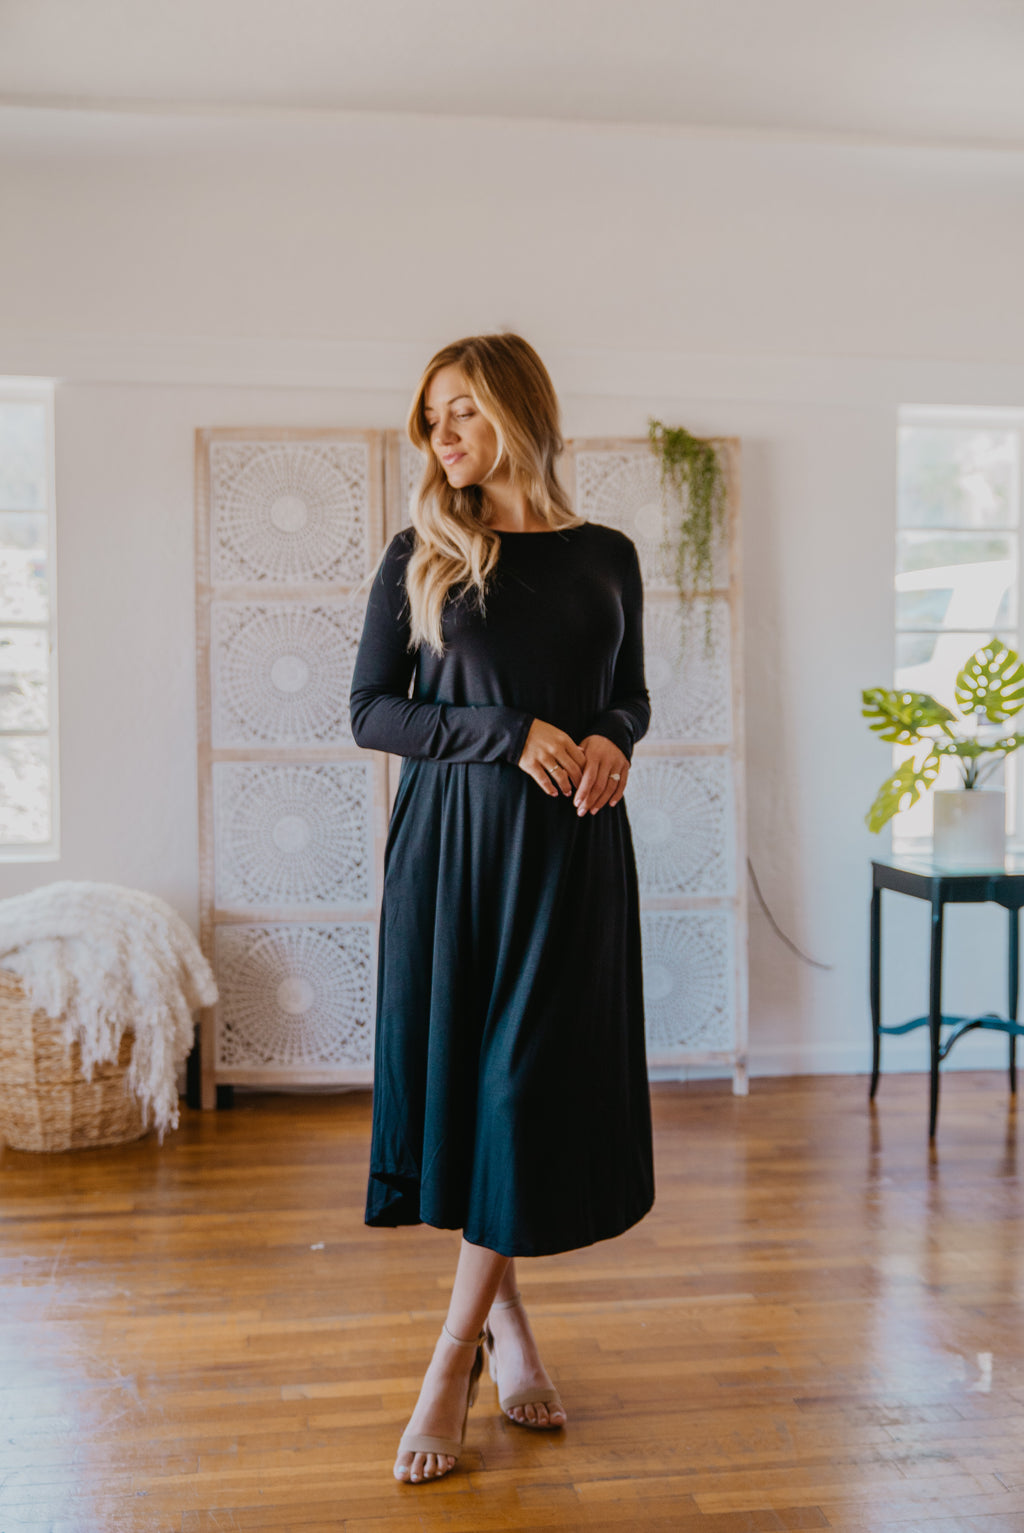 WI Basics: The Elsa Swing Dress in Black (Sizes S-3X)